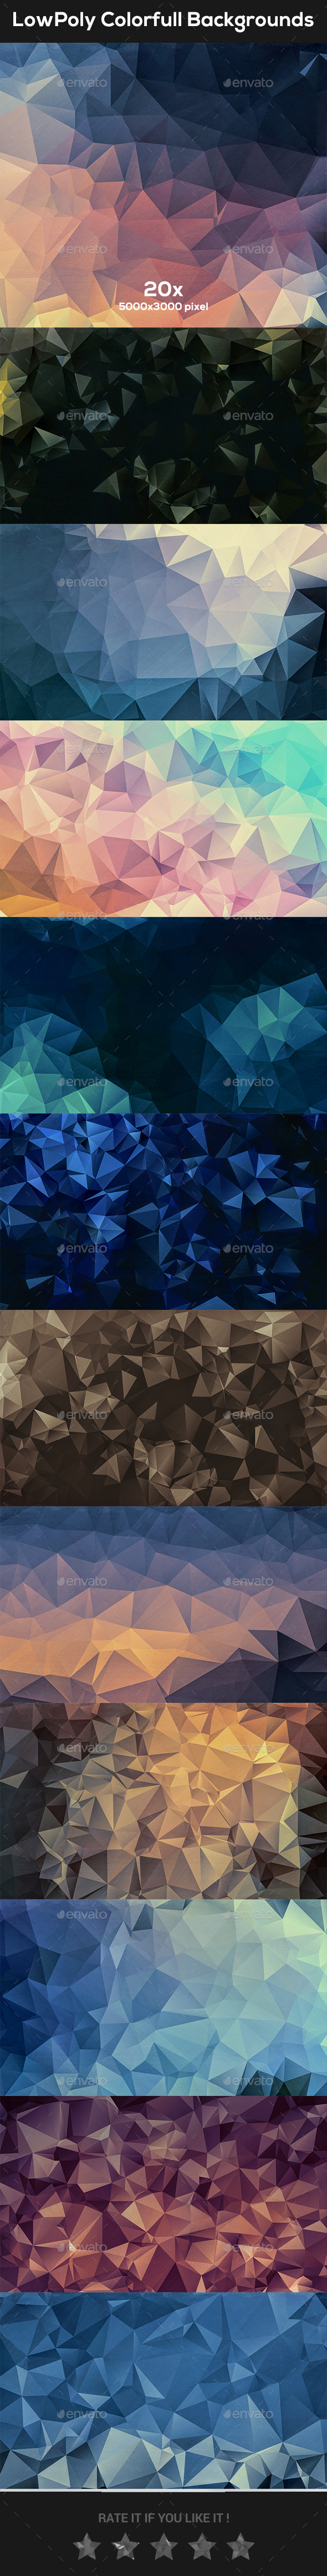 LowPoly Colorful Backgrounds - Abstract Backgrounds